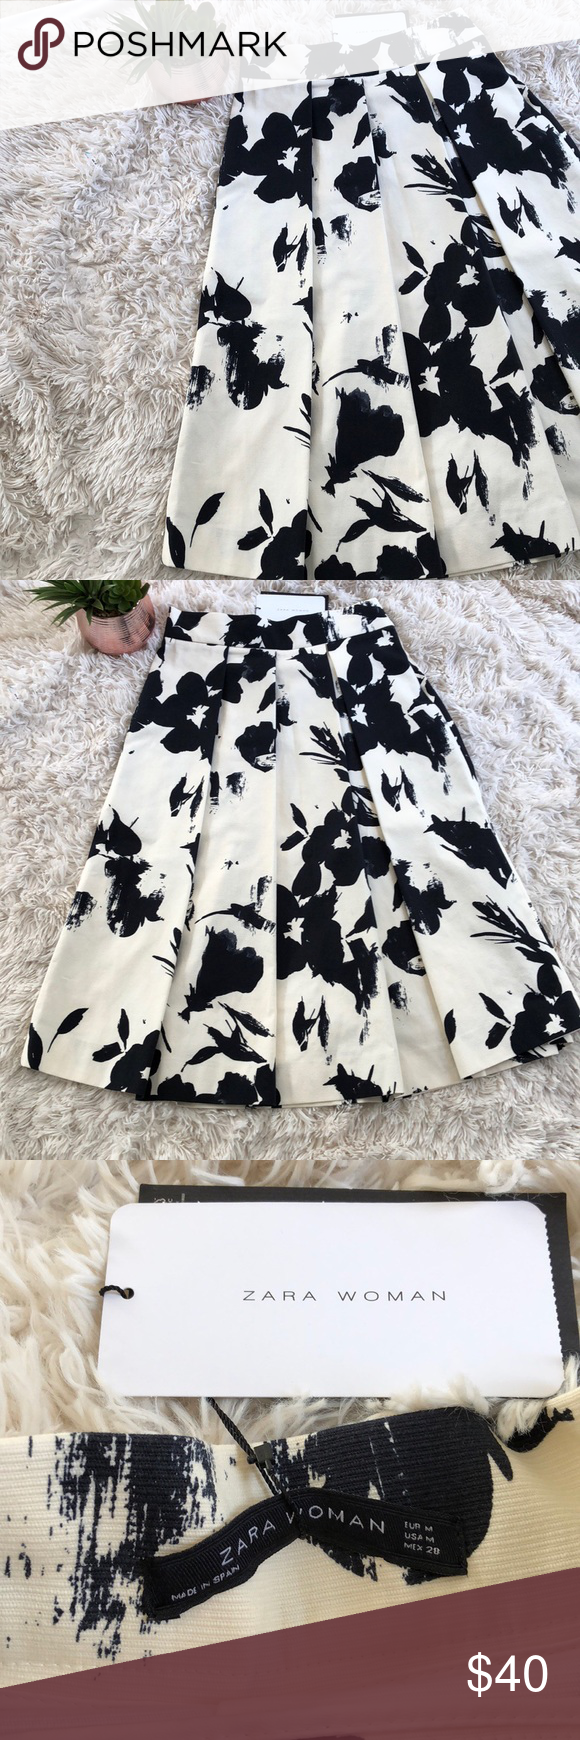 f645a6b5b6 Zara Women Pleated Floral Midi Skirt Beautiful light cream with navy floral  detail. Midi style, best to wear high waisted with a zipper.